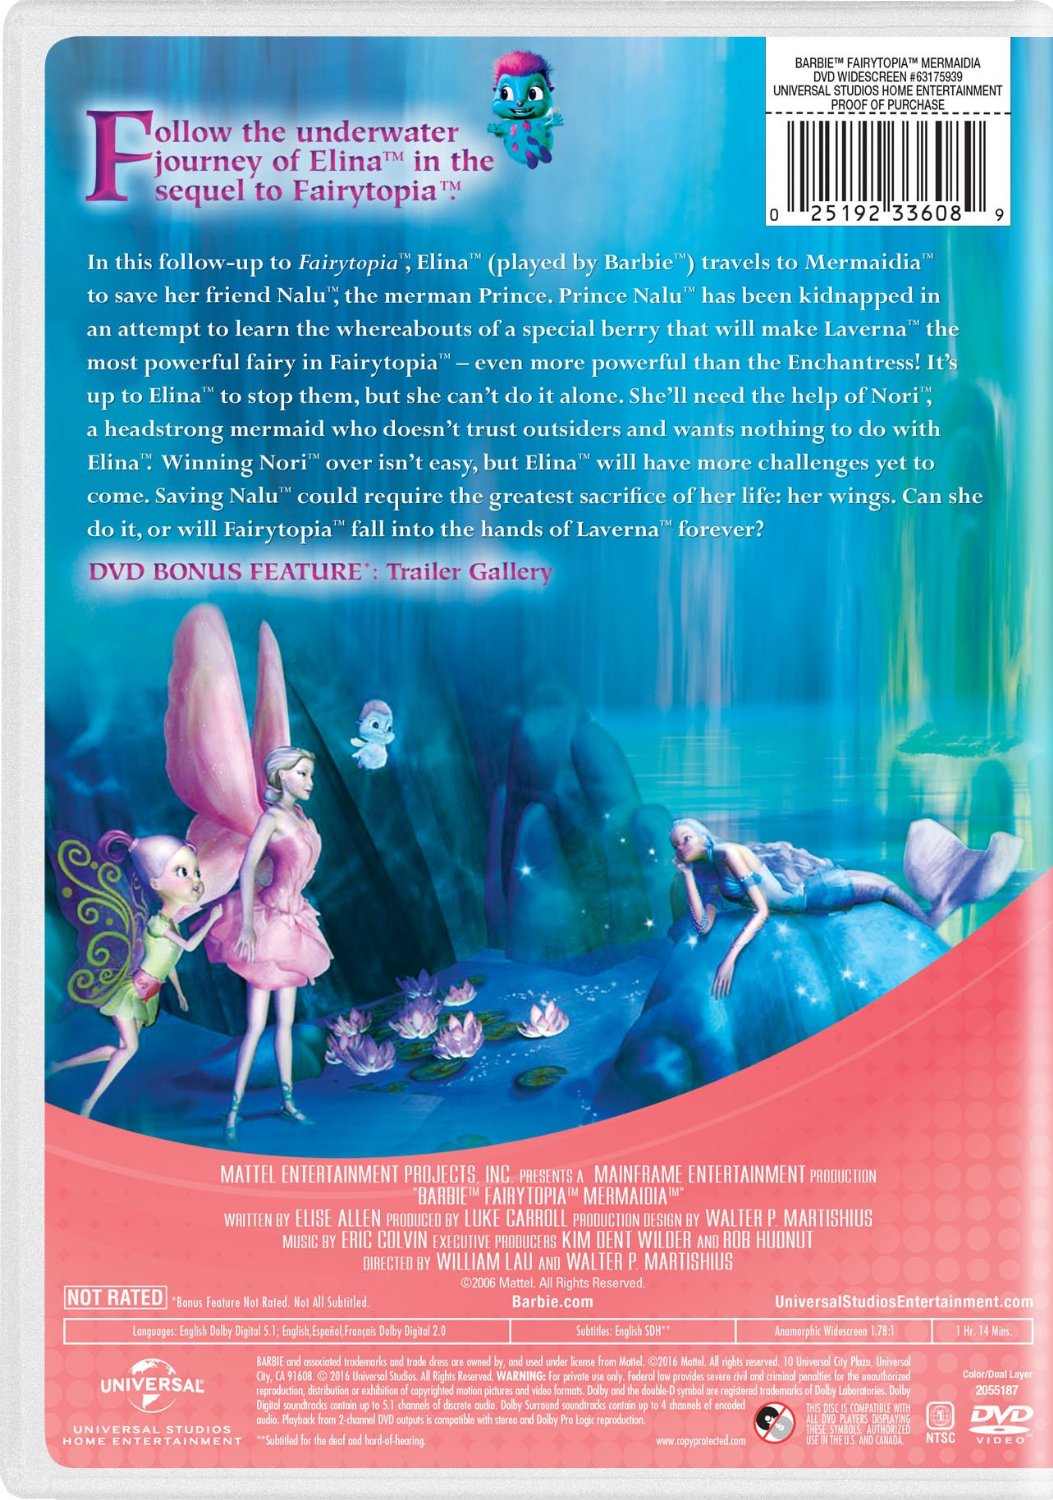 बार्बी Fairytopia: Mermaidia 2016 DVD with New Artwork